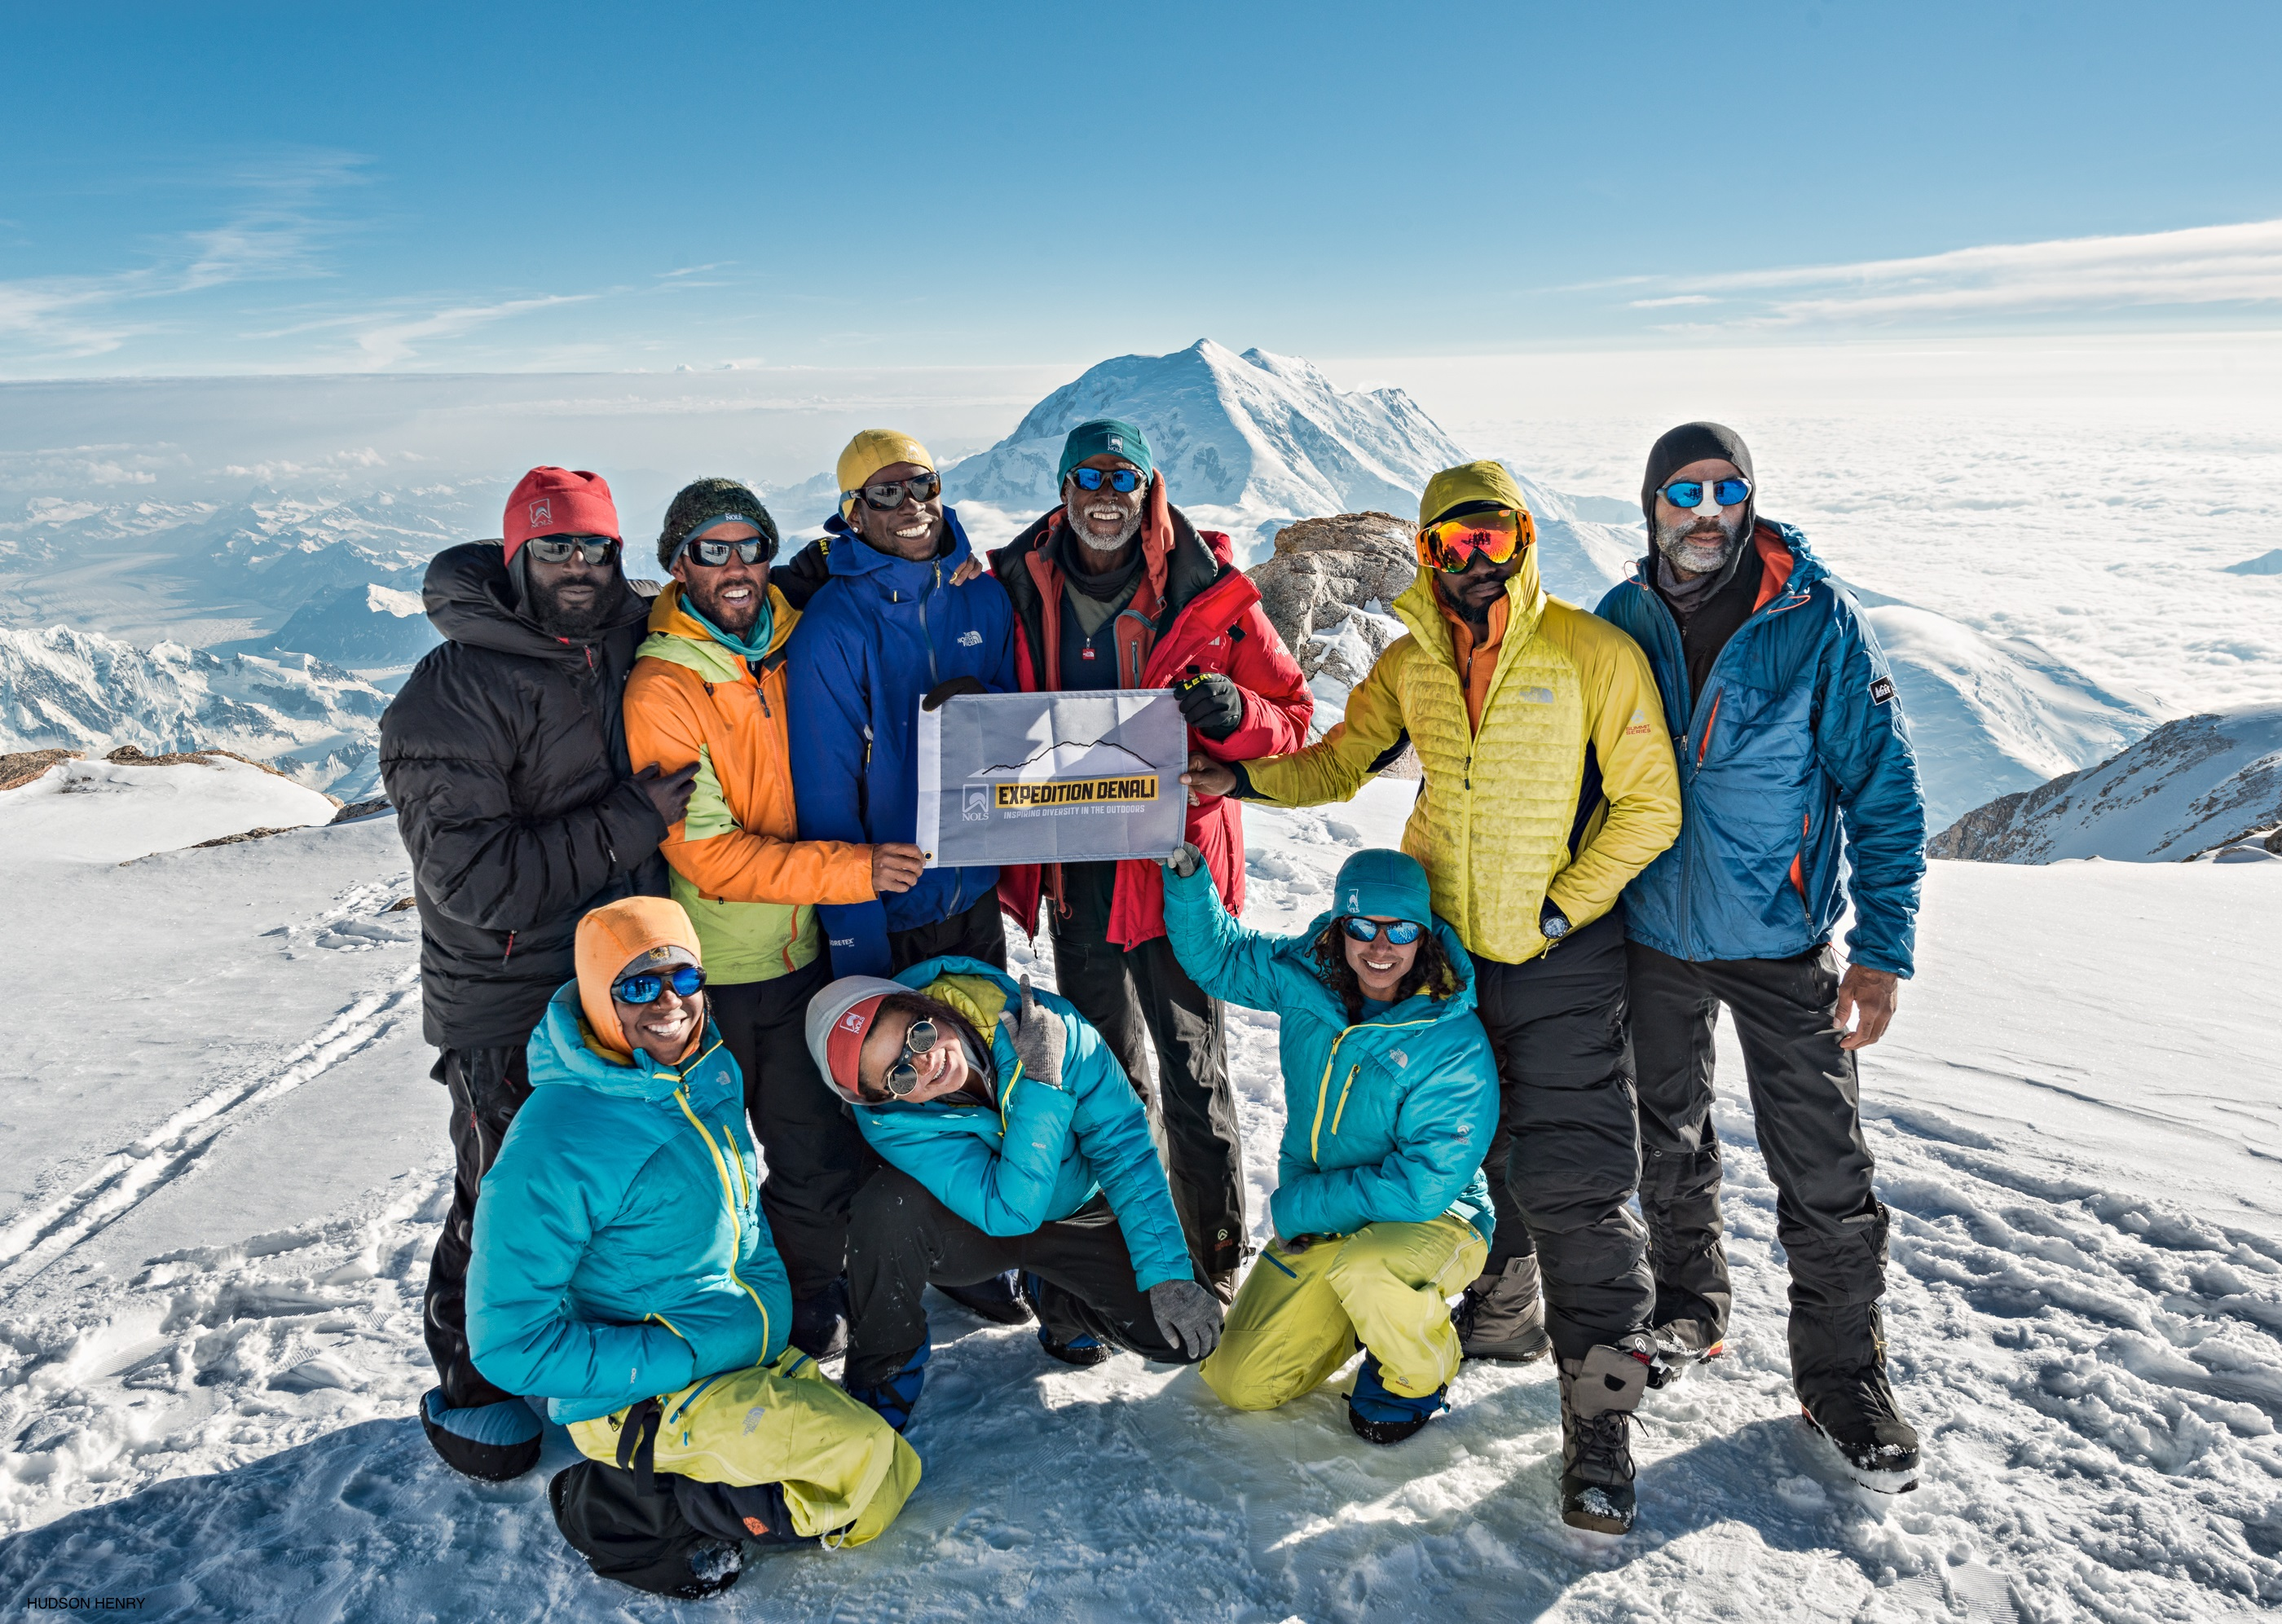 Photo for Expedition Denali event.